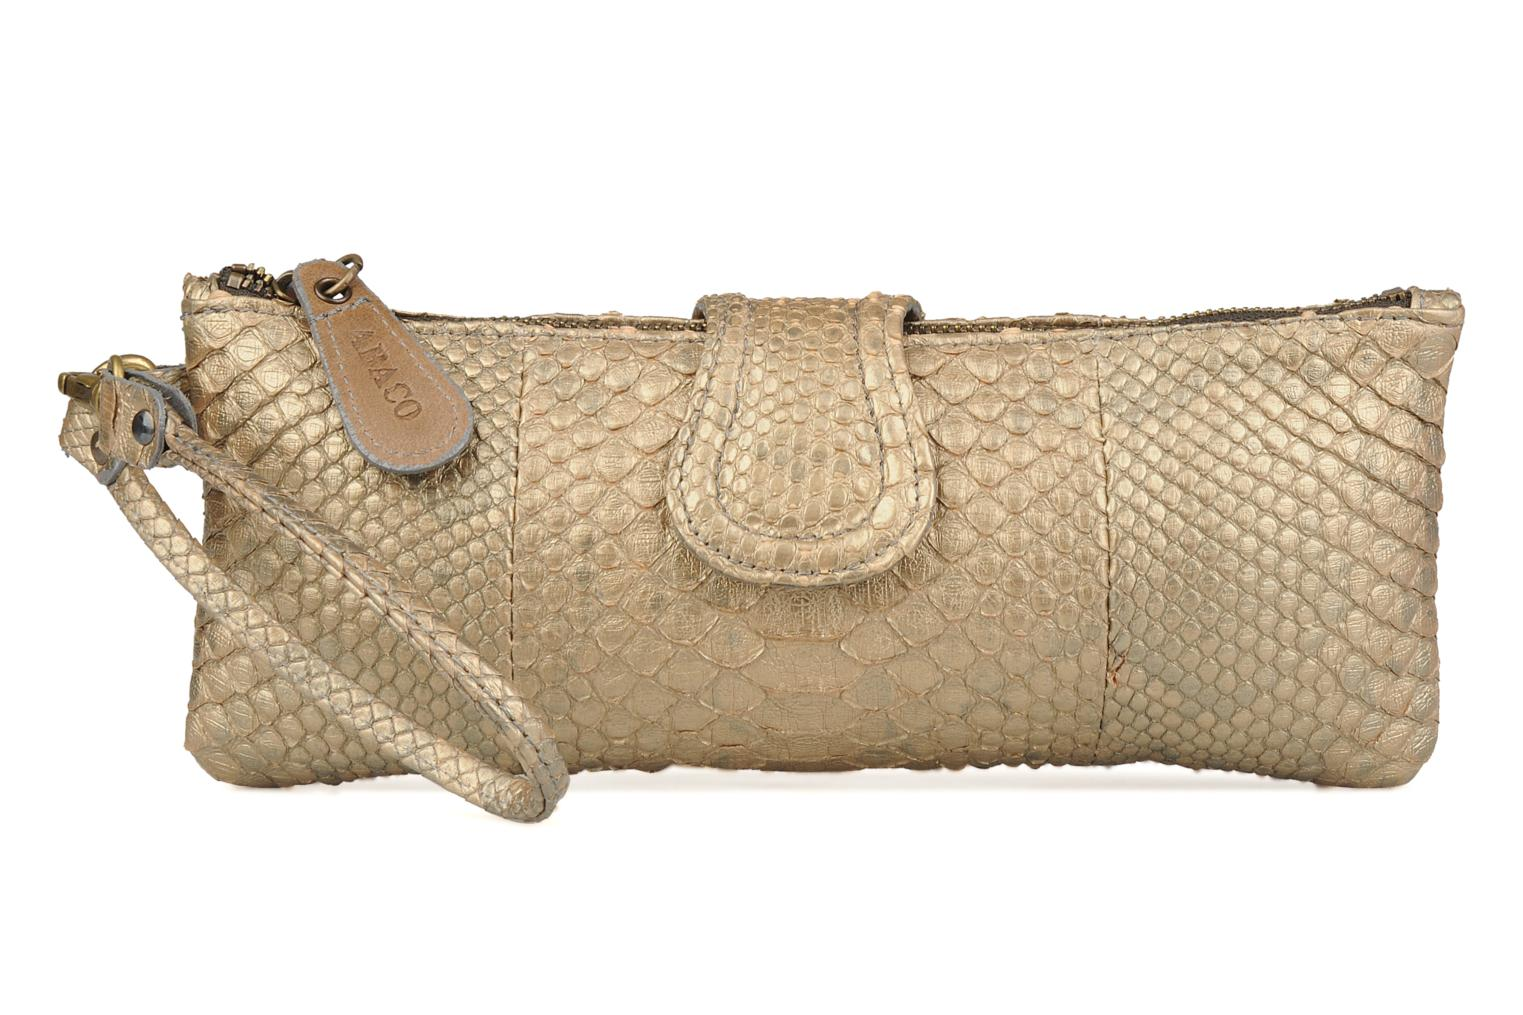 Baguette python by abaco.